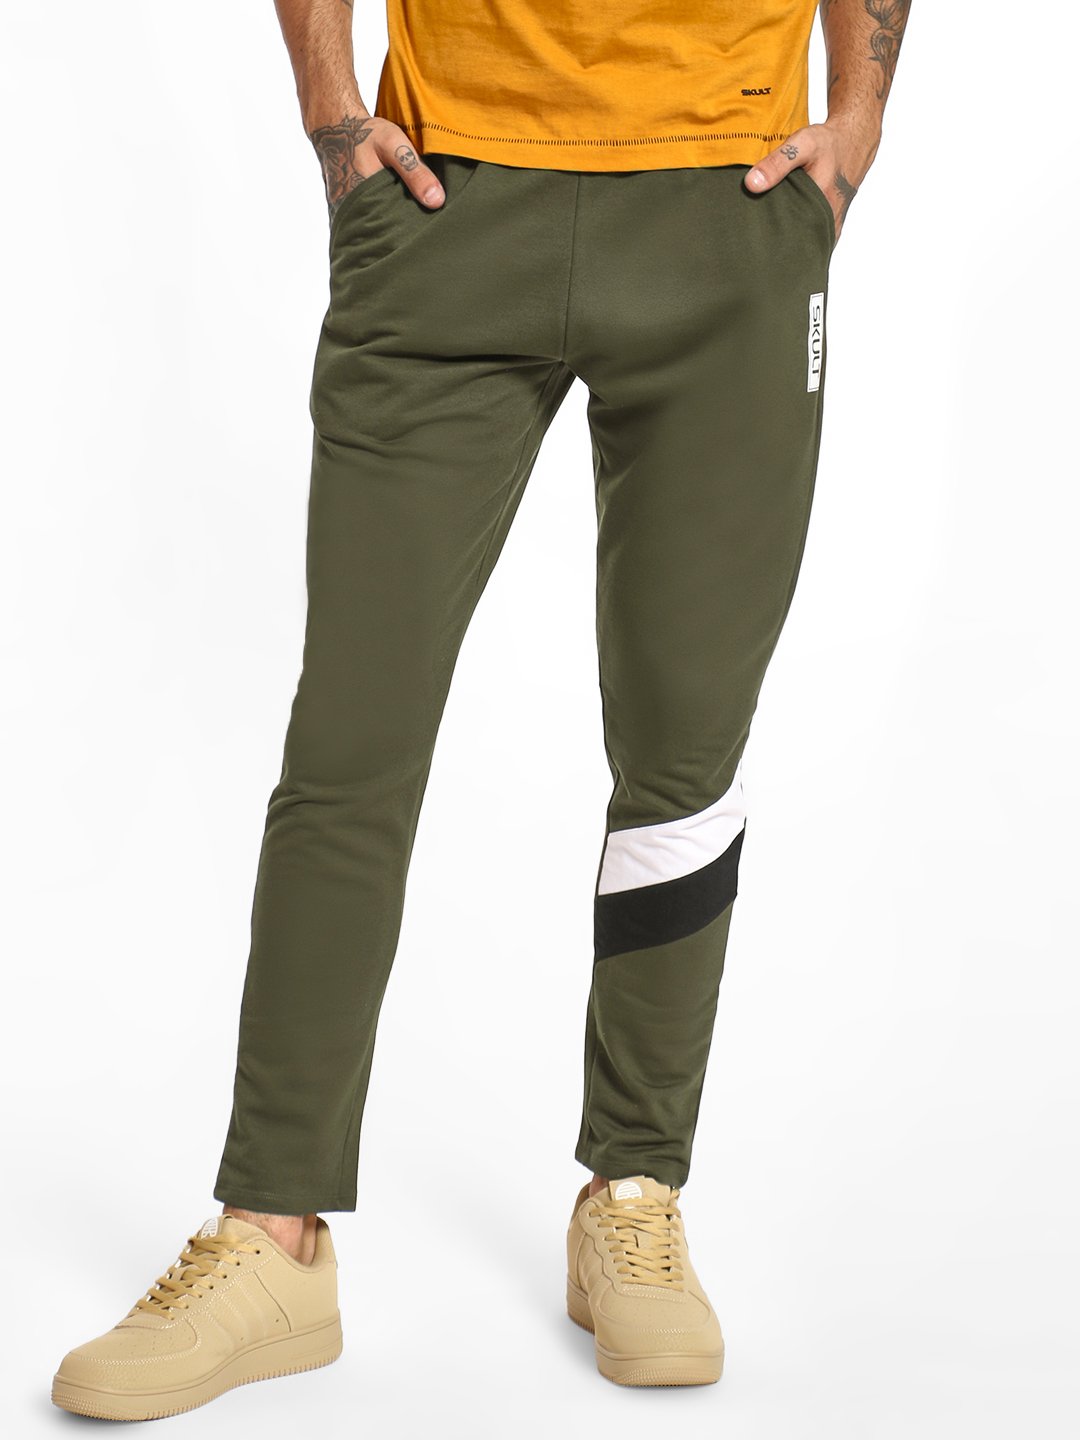 SKULT By Shahid Kapoor Green Cut & Sew Contrast Panel Joggers 1